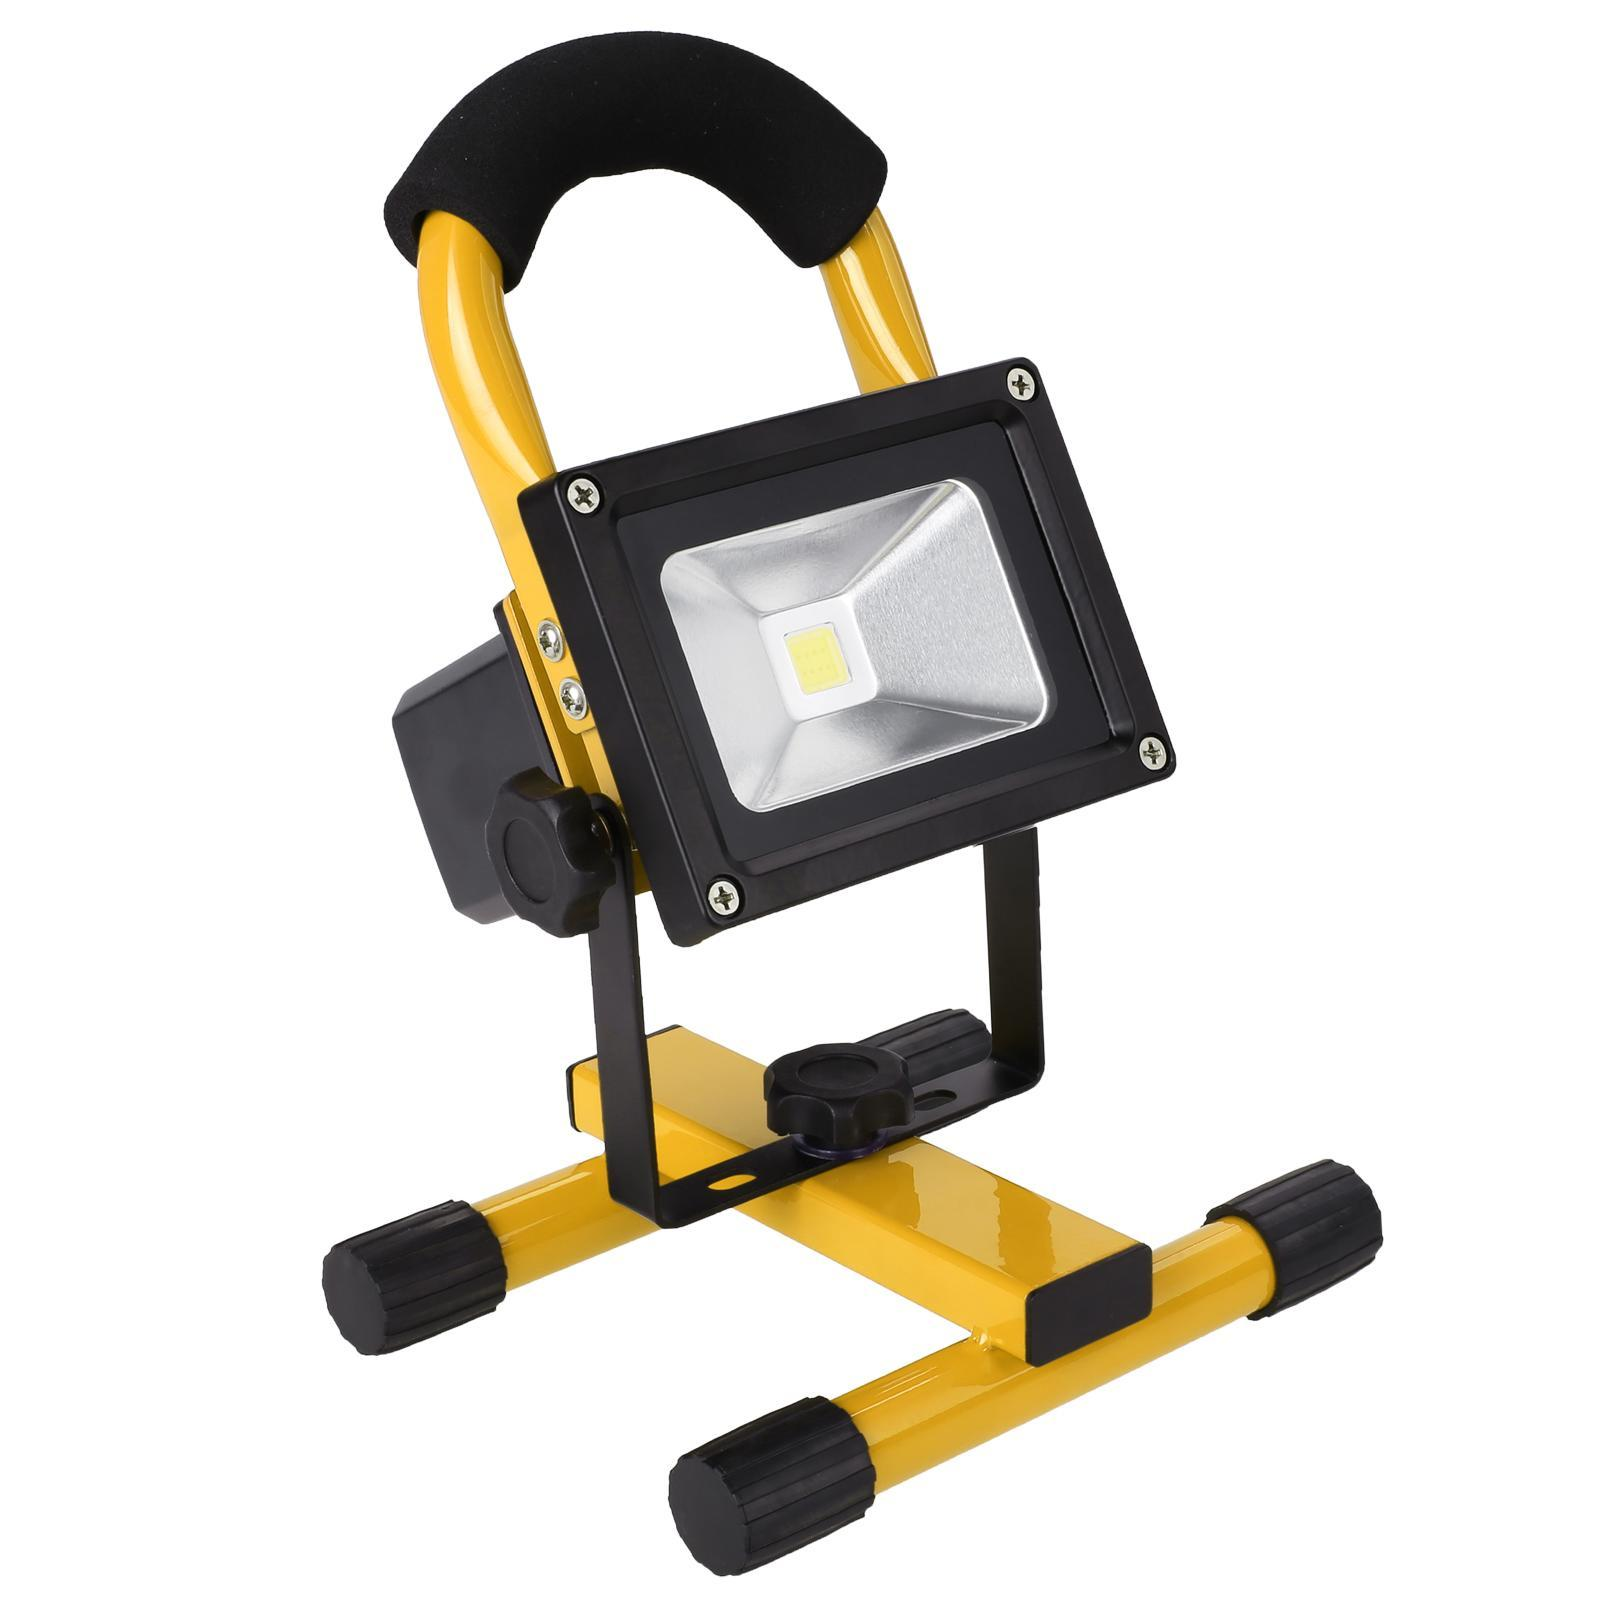 Shopifystore 10W Wireless Rechargeable LED Flood Light, Outdoor Camping Hiking Lamp US Plug